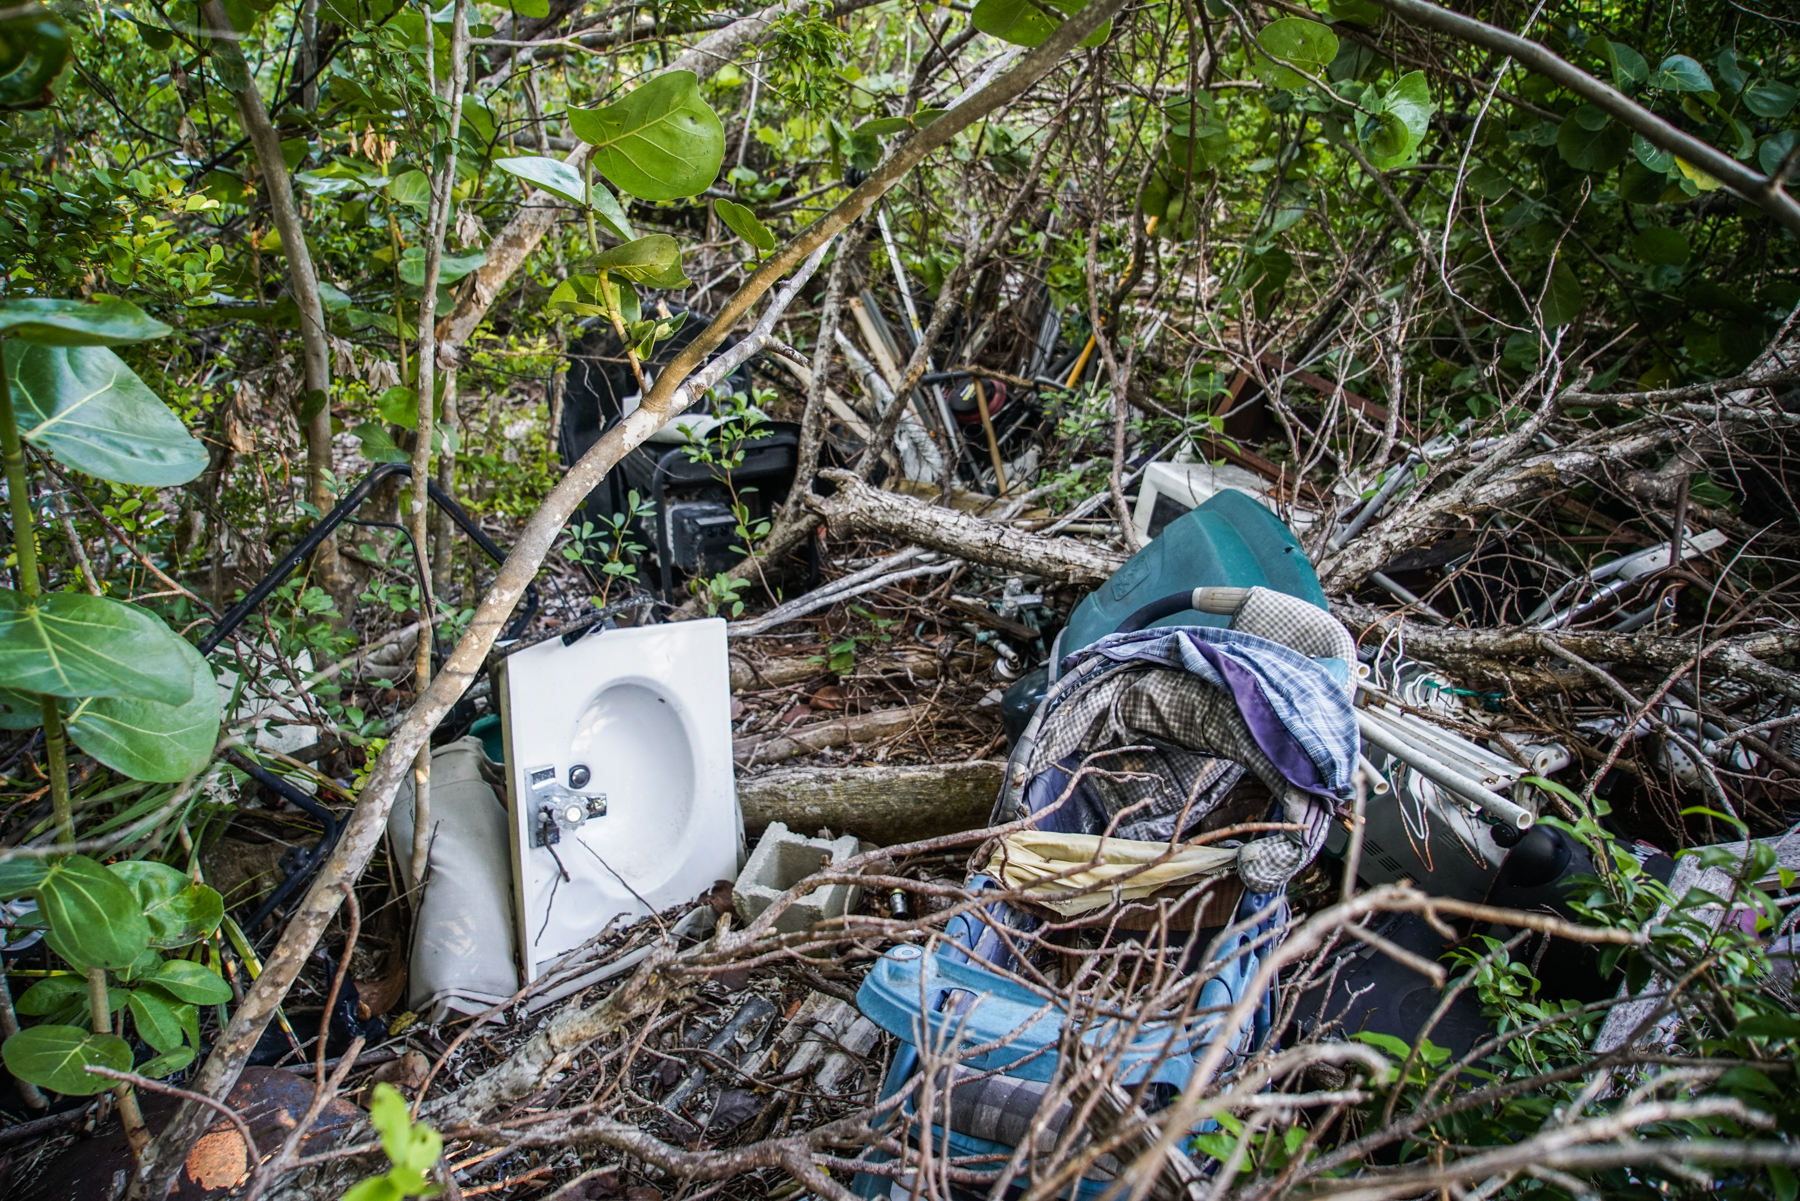 While walking around his property I noticed a baby stroller, a sink, boxes and other items still tucked into the mangroves.